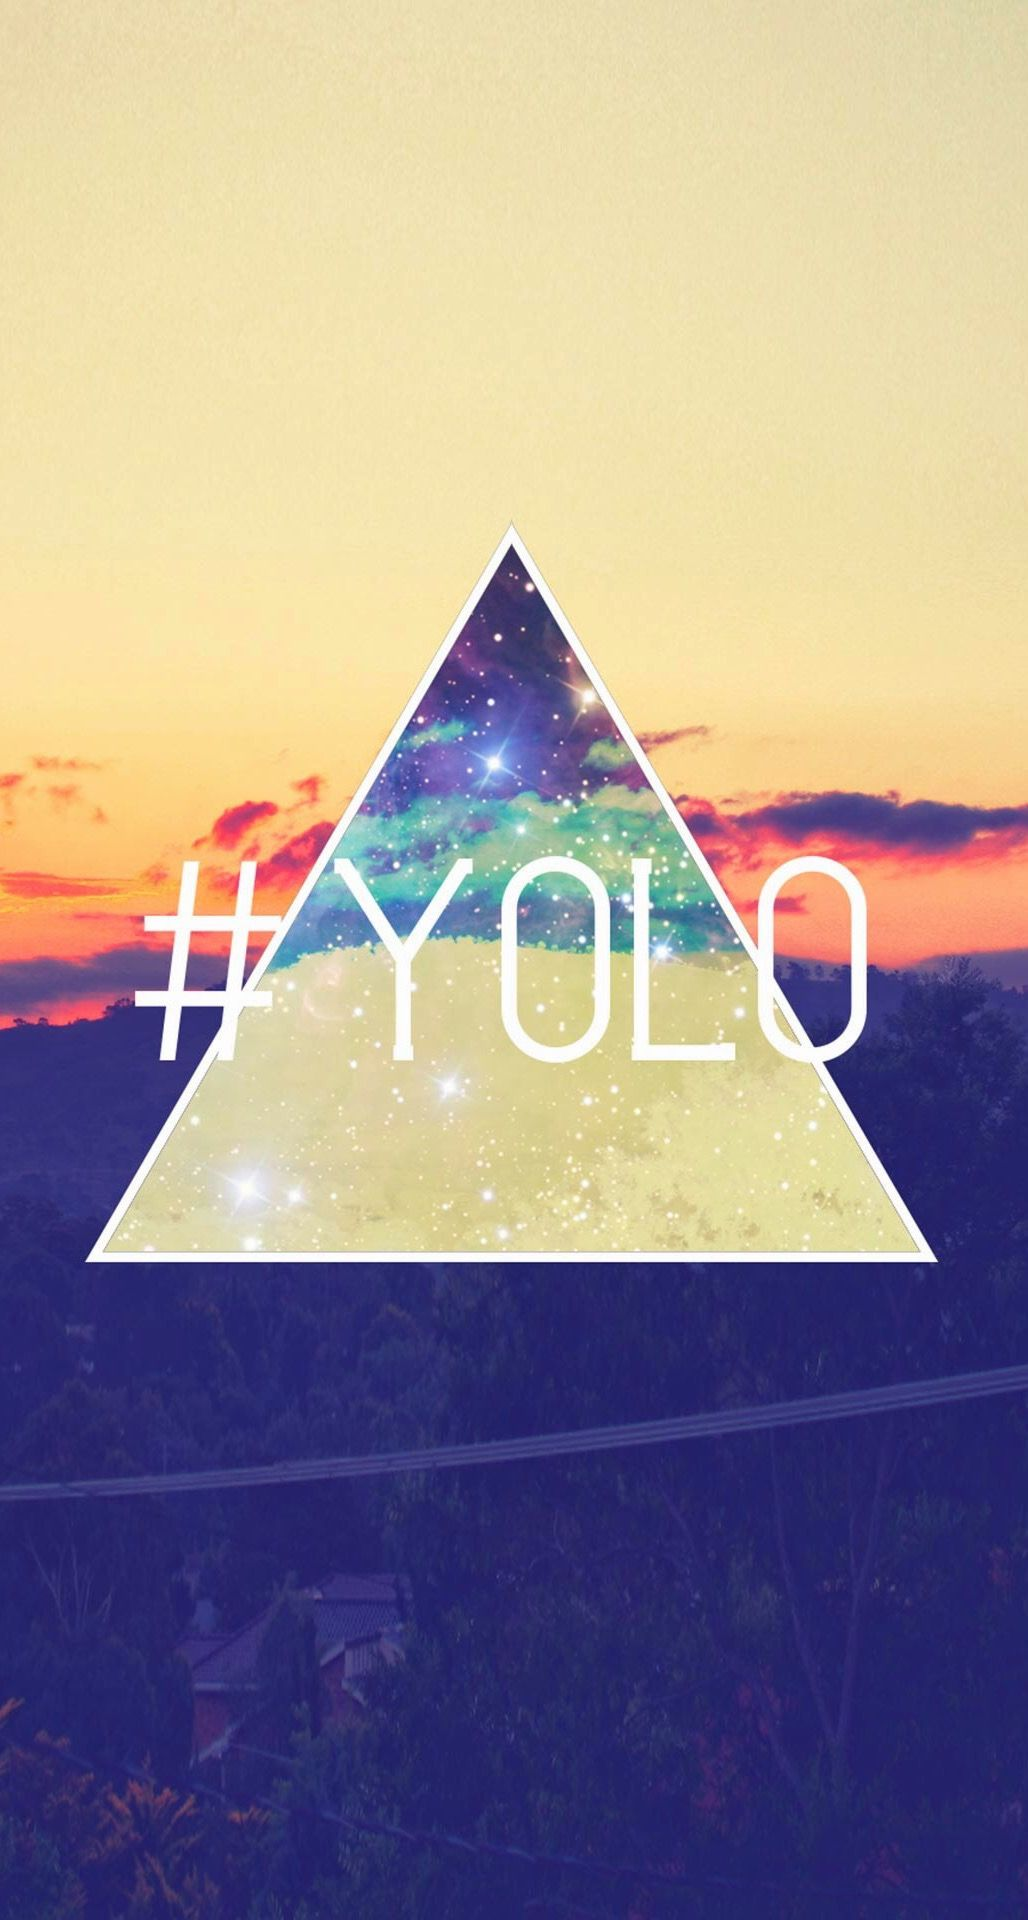 Wallpaper iphone retro - Yolo You Only Live Once Retro Iphone 6 Plus Hd Wallpaper